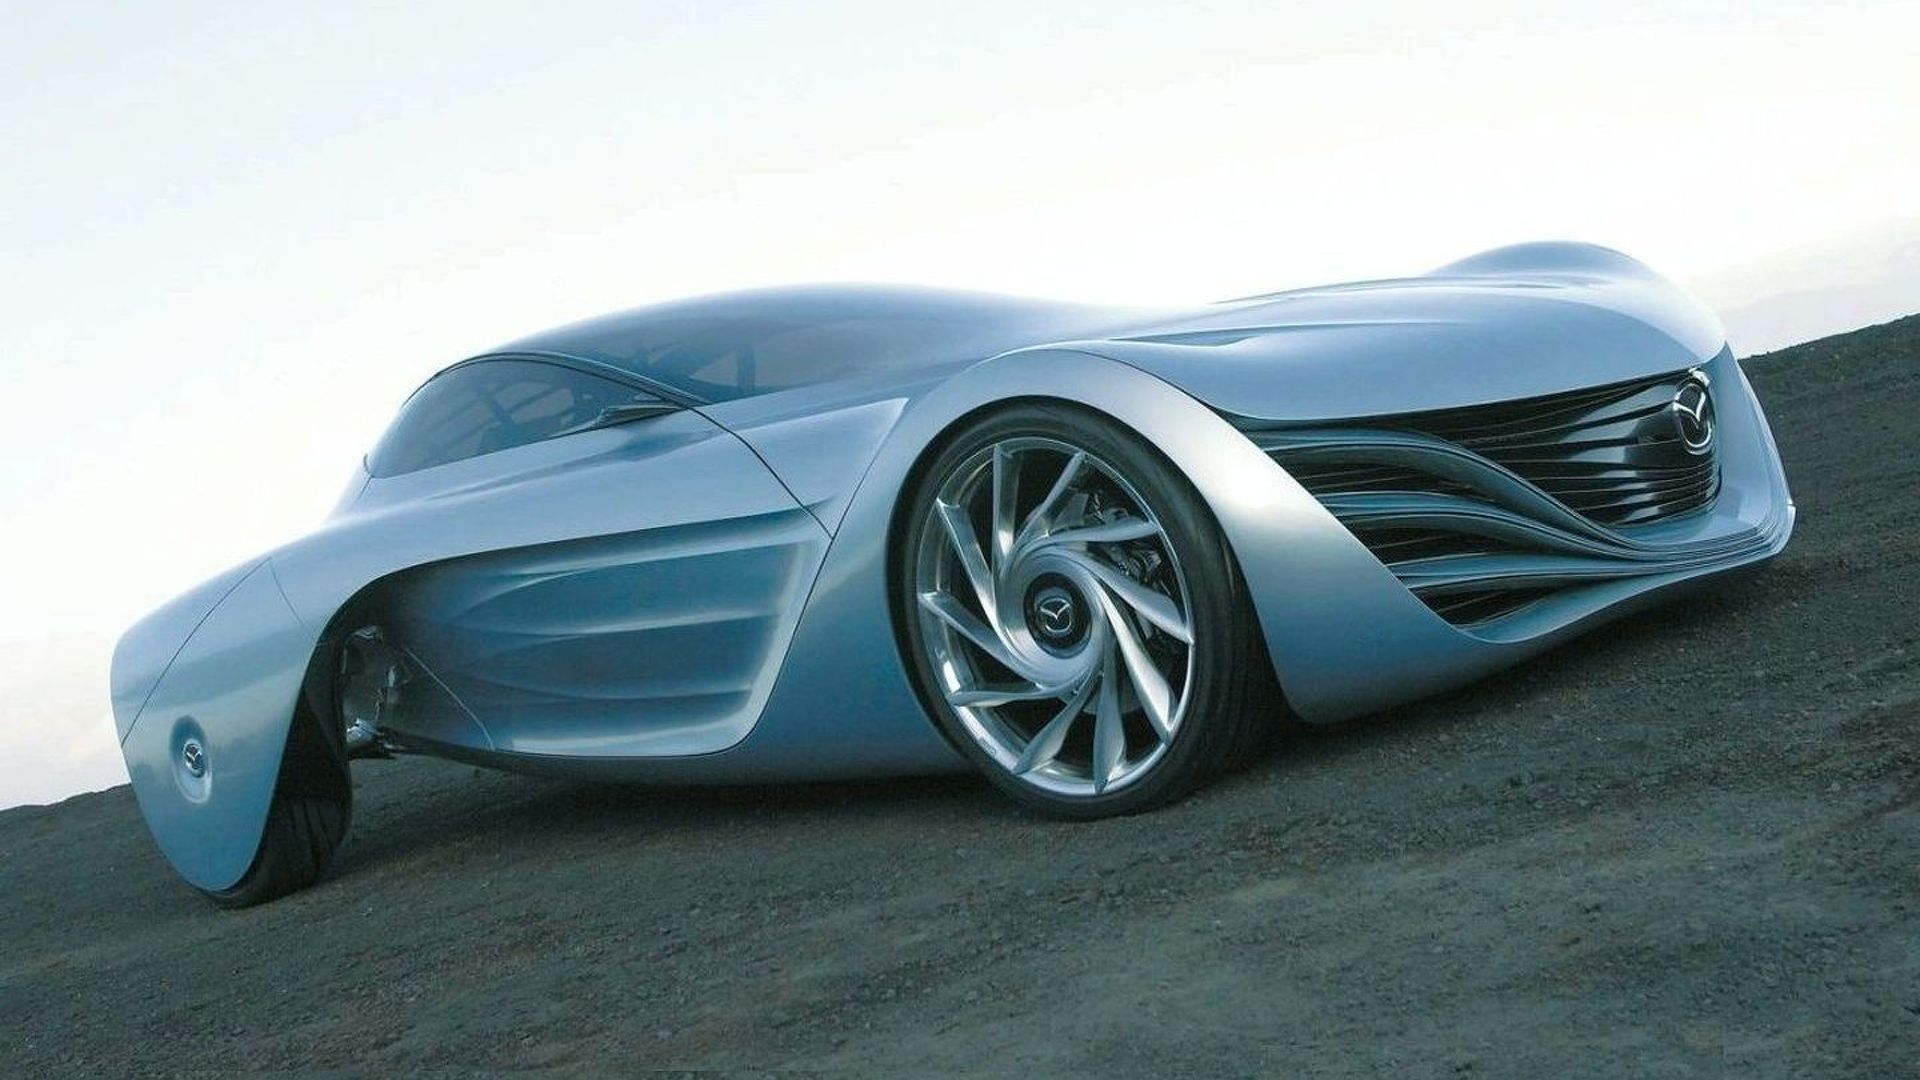 https://icdn-8.motor1.com/images/mgl/0y6m/s1/2007-30151-mazda-taiki-concept1.jpg